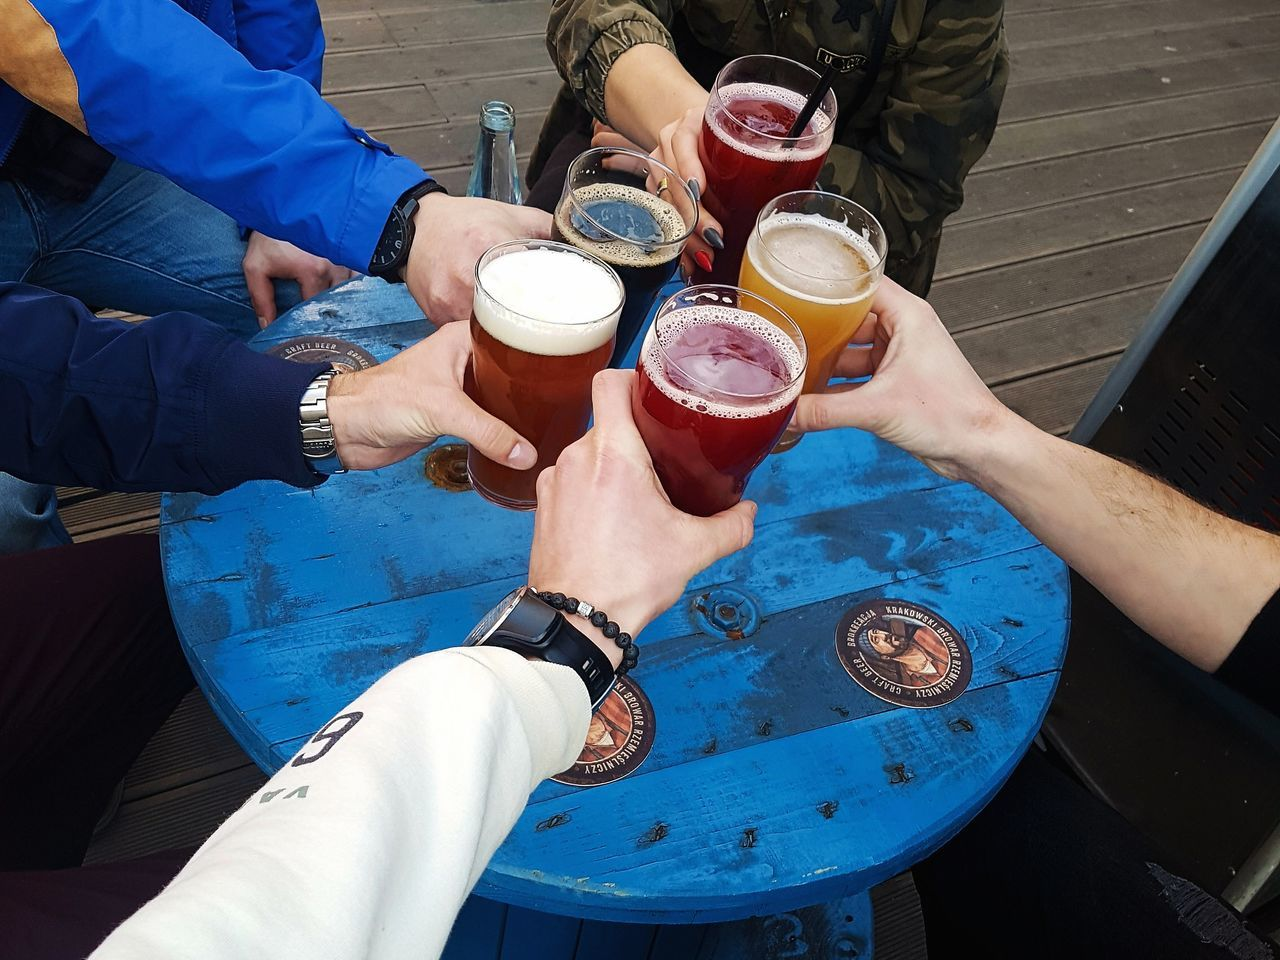 drink, beer - alcohol, alcohol, real people, food and drink, refreshment, human hand, drinking, beer glass, friendship, drinking glass, men, human body part, outdoors, beer, lifestyles, togetherness, day, leisure activity, high angle view, table, holding, women, wristwatch, water, low section, freshness, people